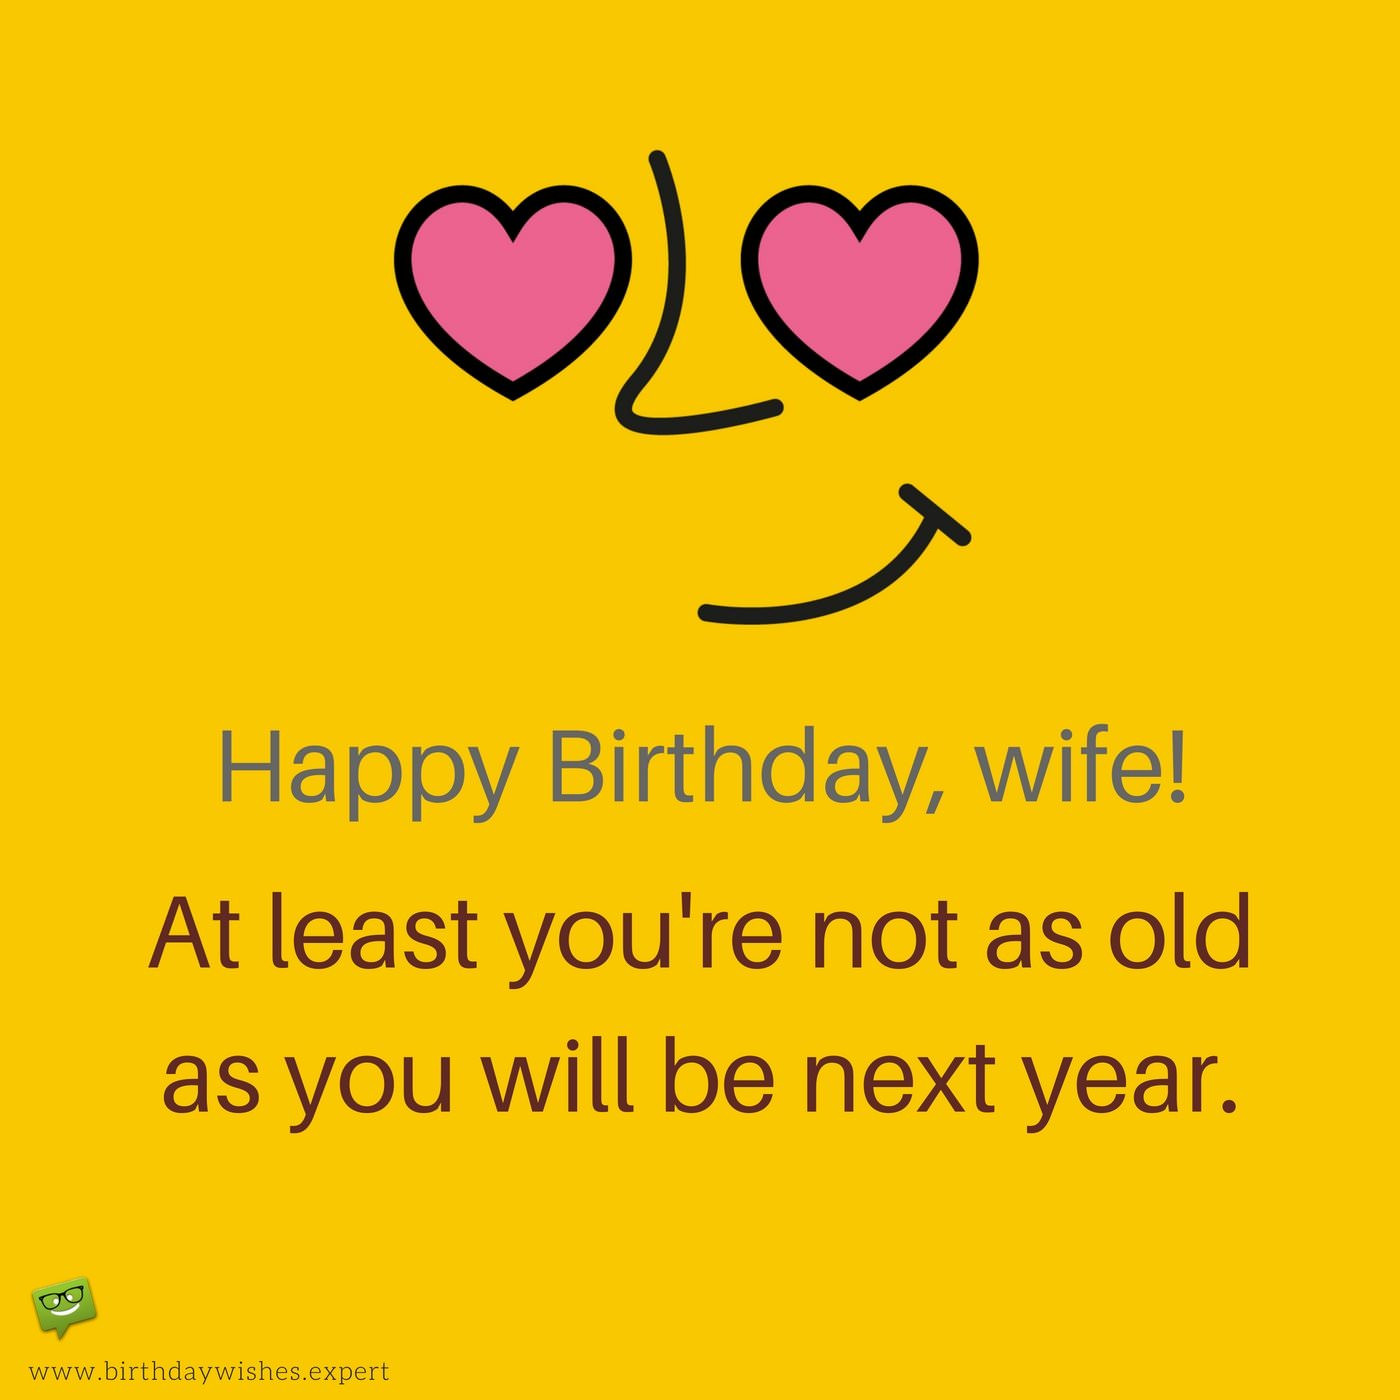 Best ideas about Birthday Wishes To Wife . Save or Pin The Funniest Wishes to Make your Wife Smile on her Birthday Now.